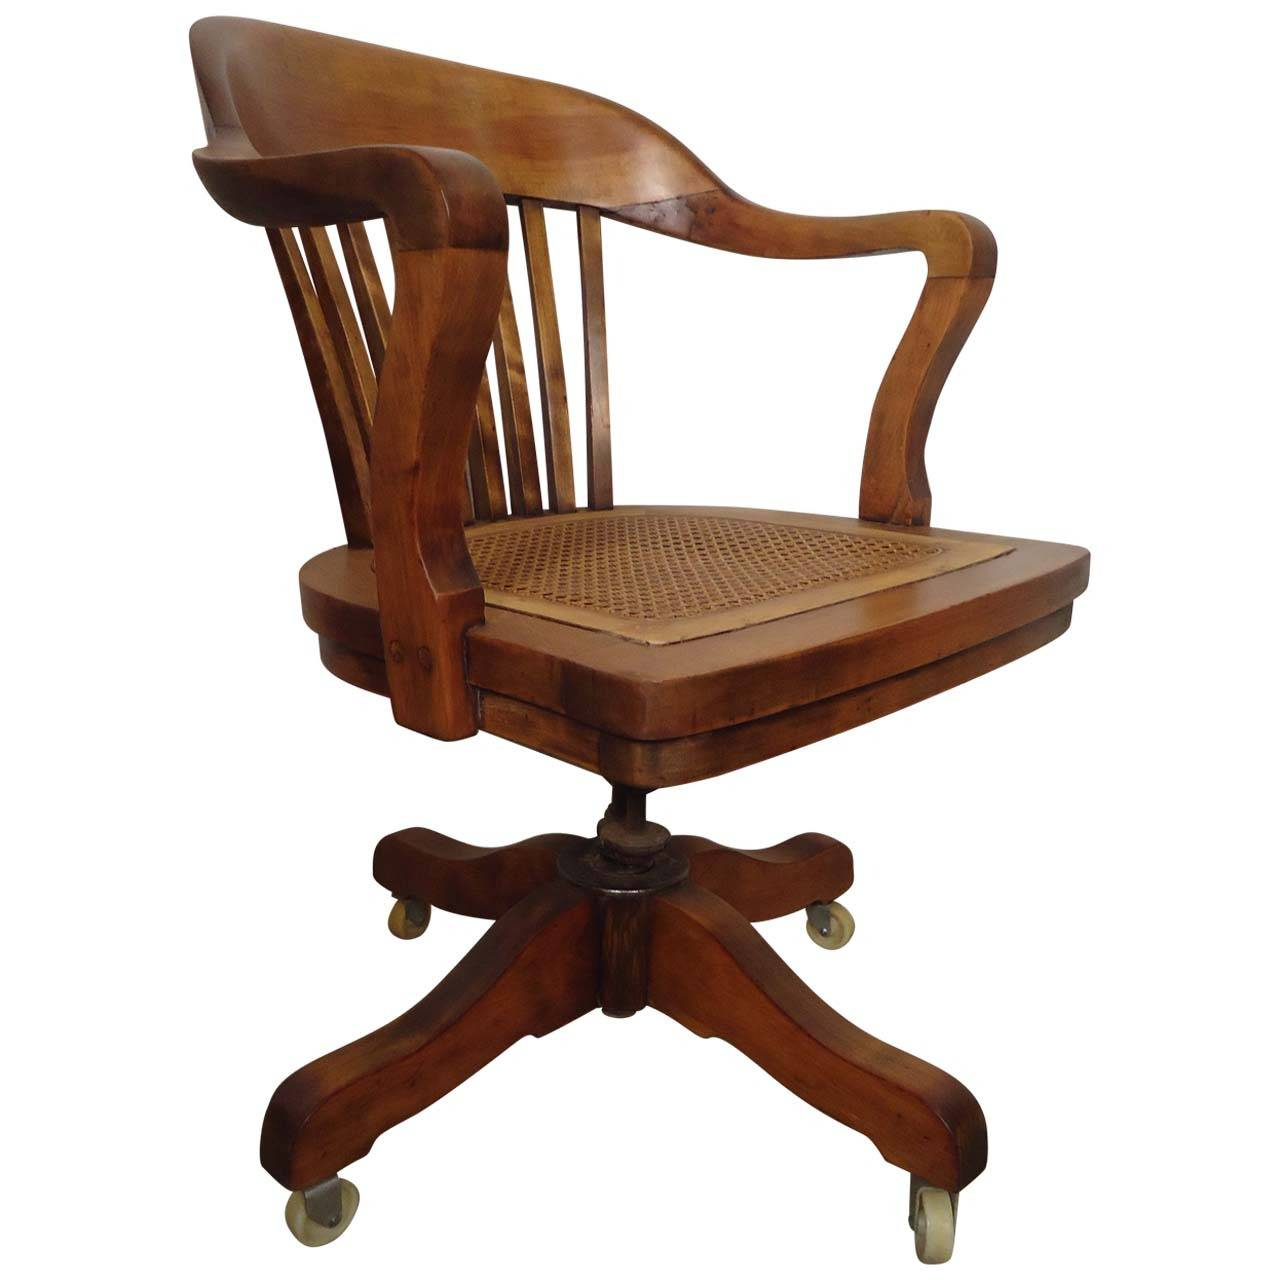 desk chair utm wheelchair youtube restored vintage swivel by page at 1stdibs